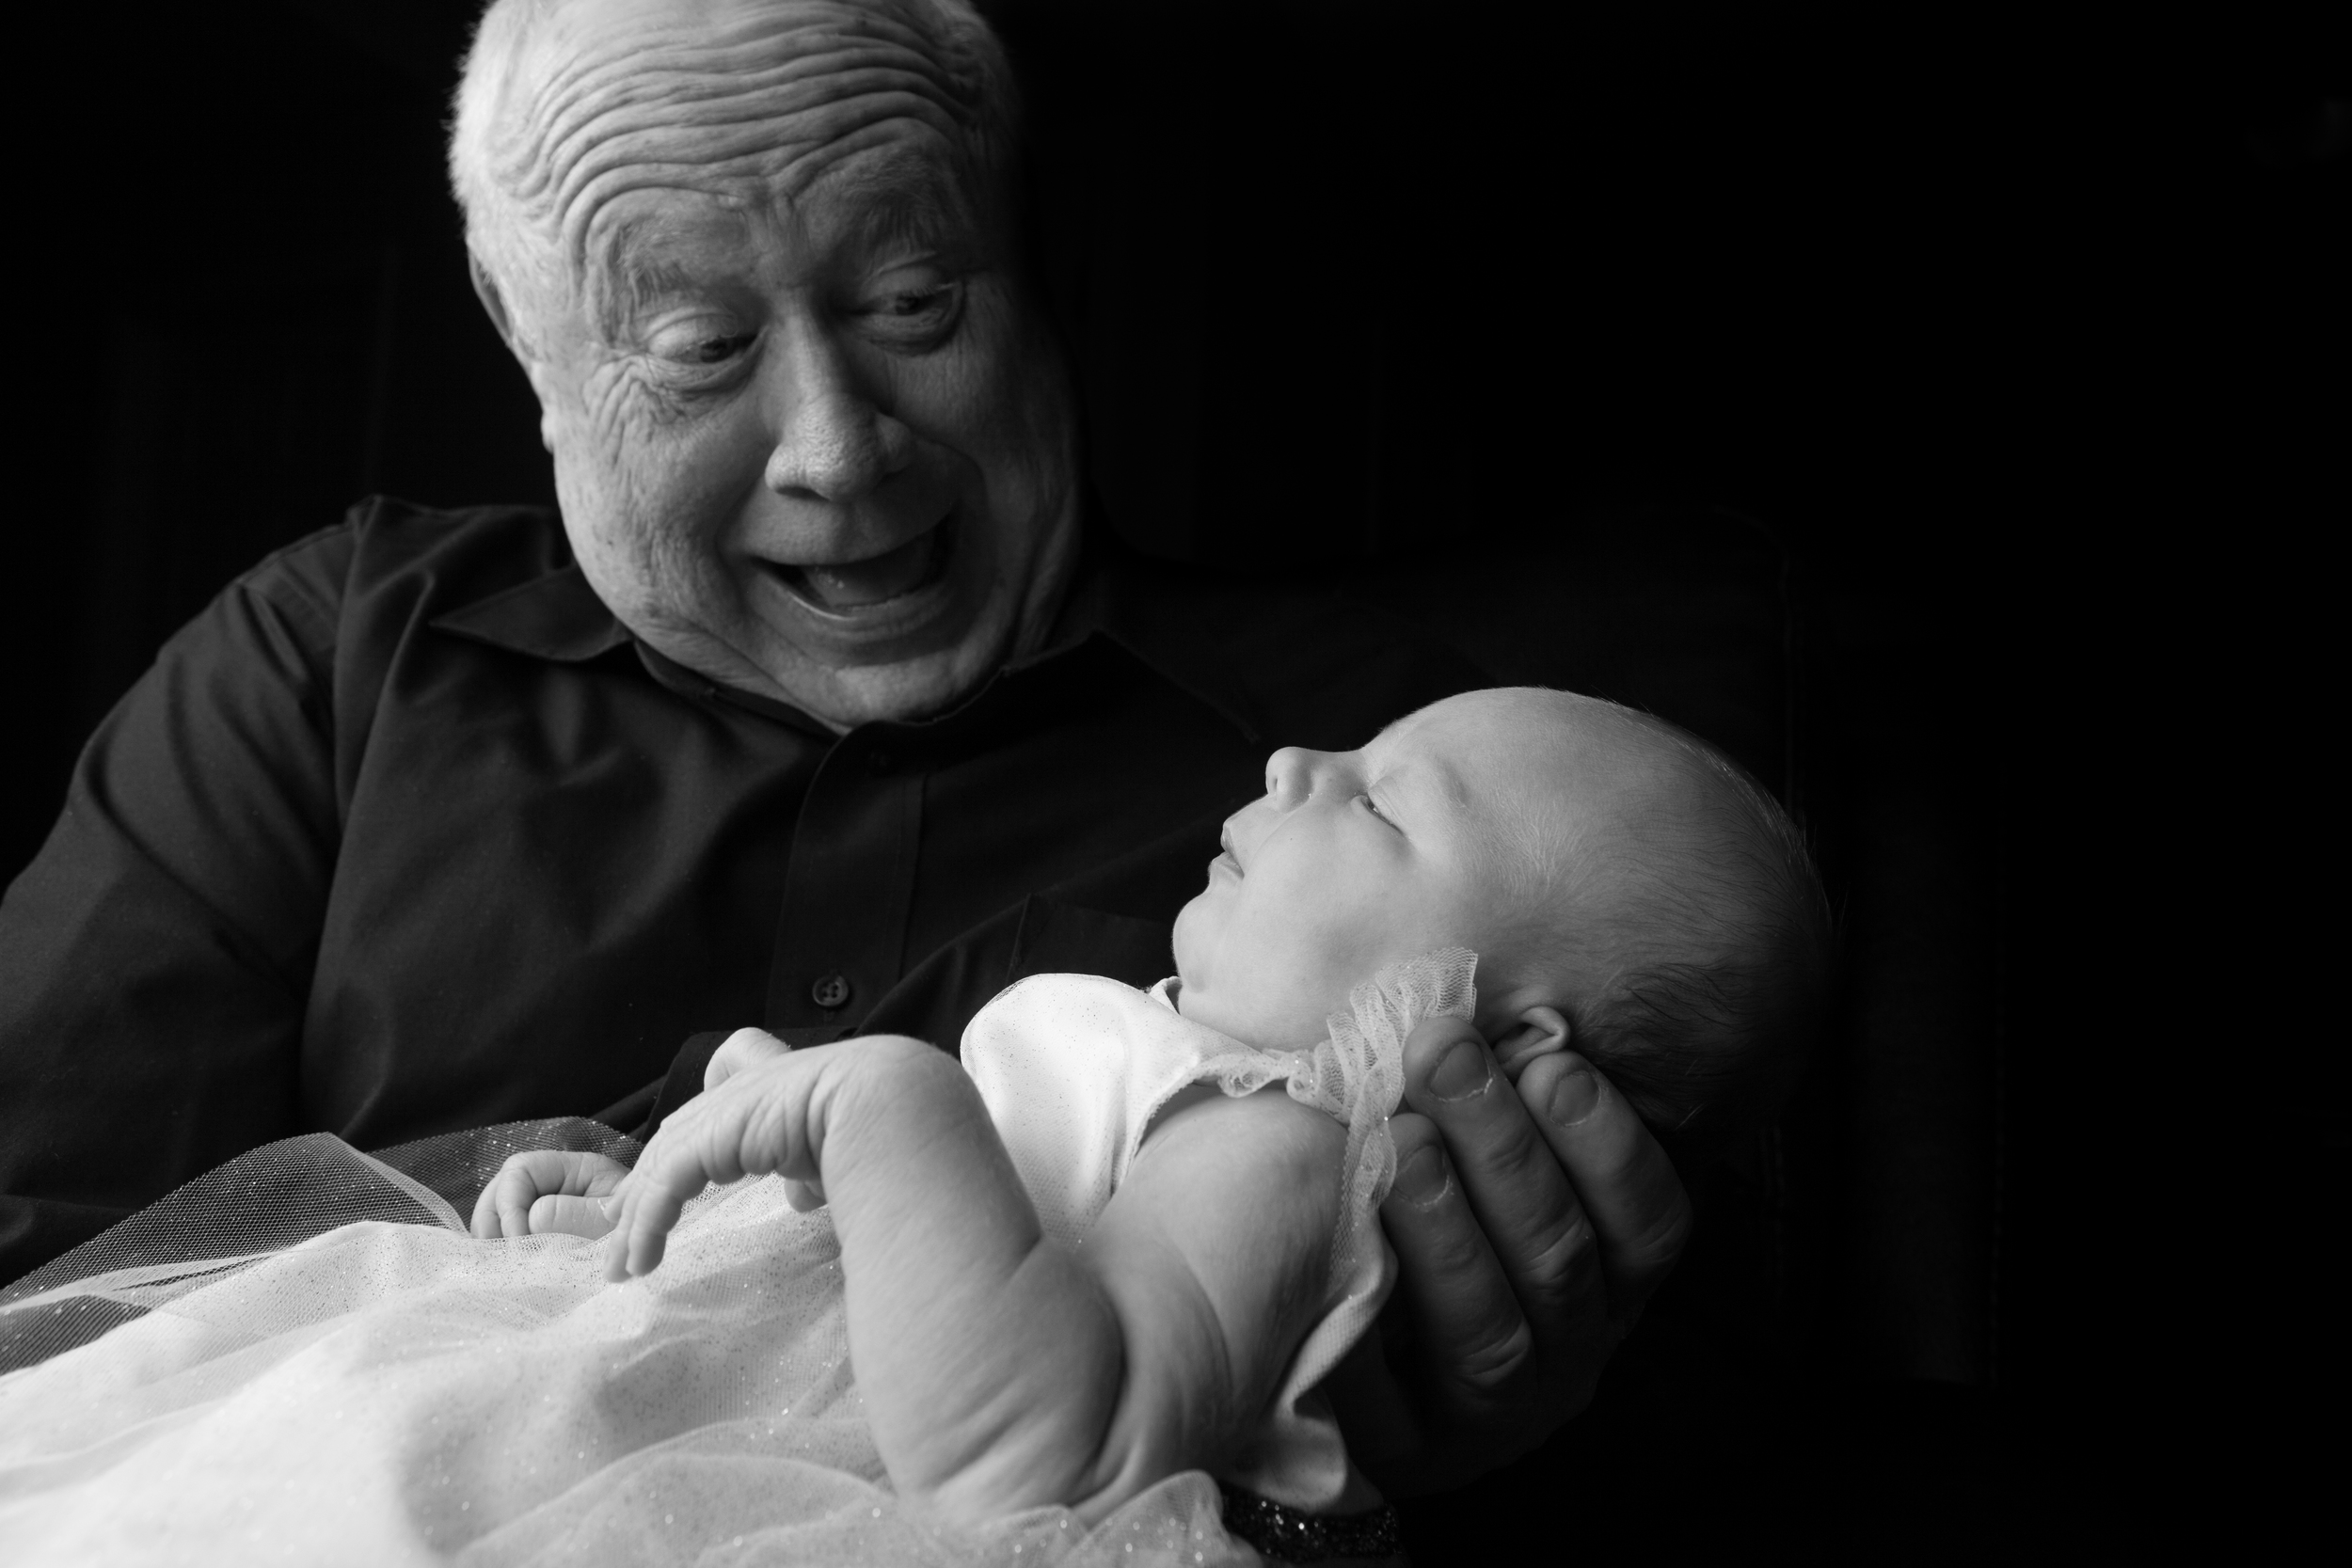 Penelope and Grandpa Tindall